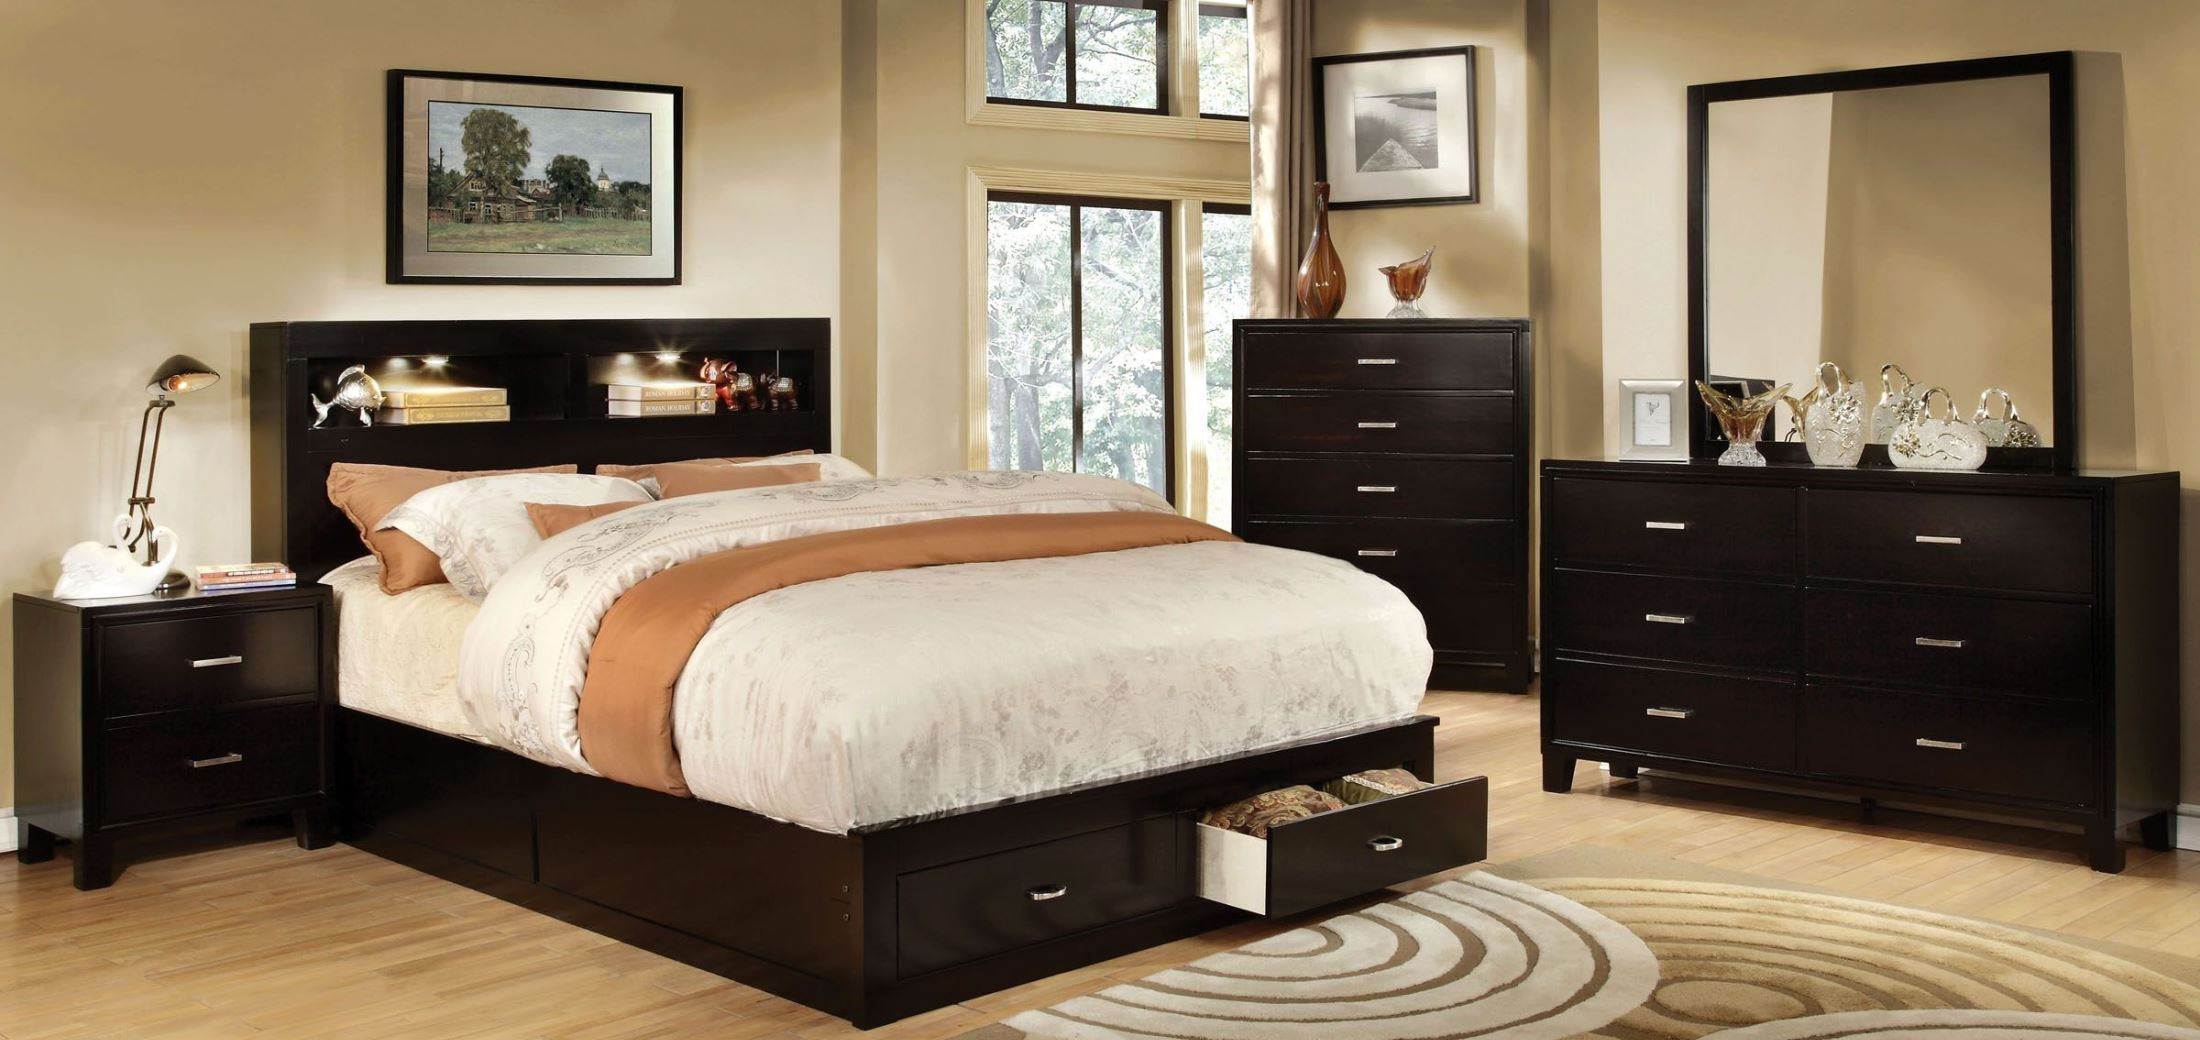 Gerico Ii Dark Espresso Storage Platform Bedroom Set From